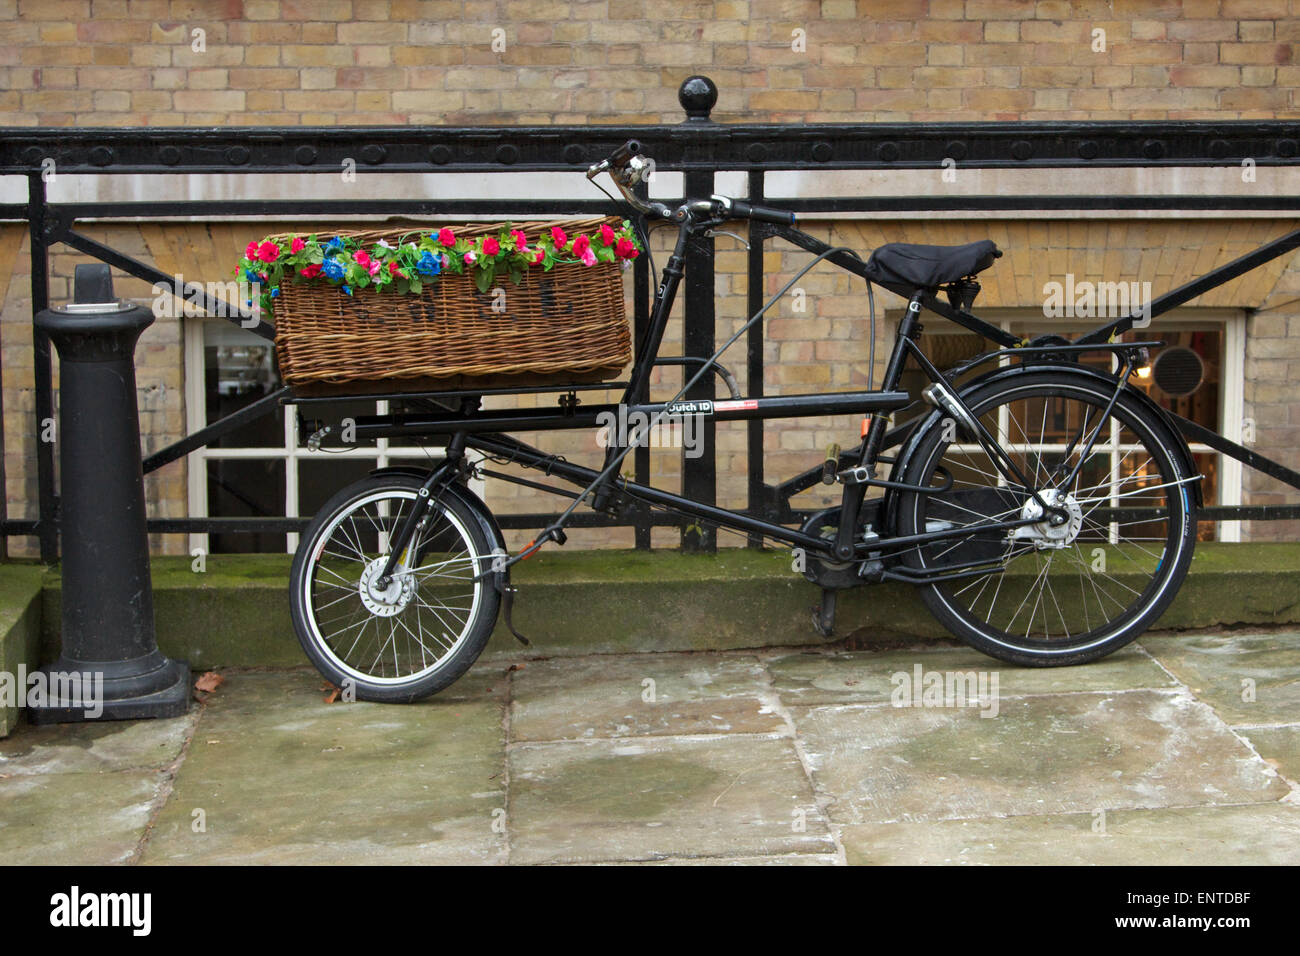 Specially-designed bicycle with a wicker basket on the front, decorated with flowers, England Stock Photo